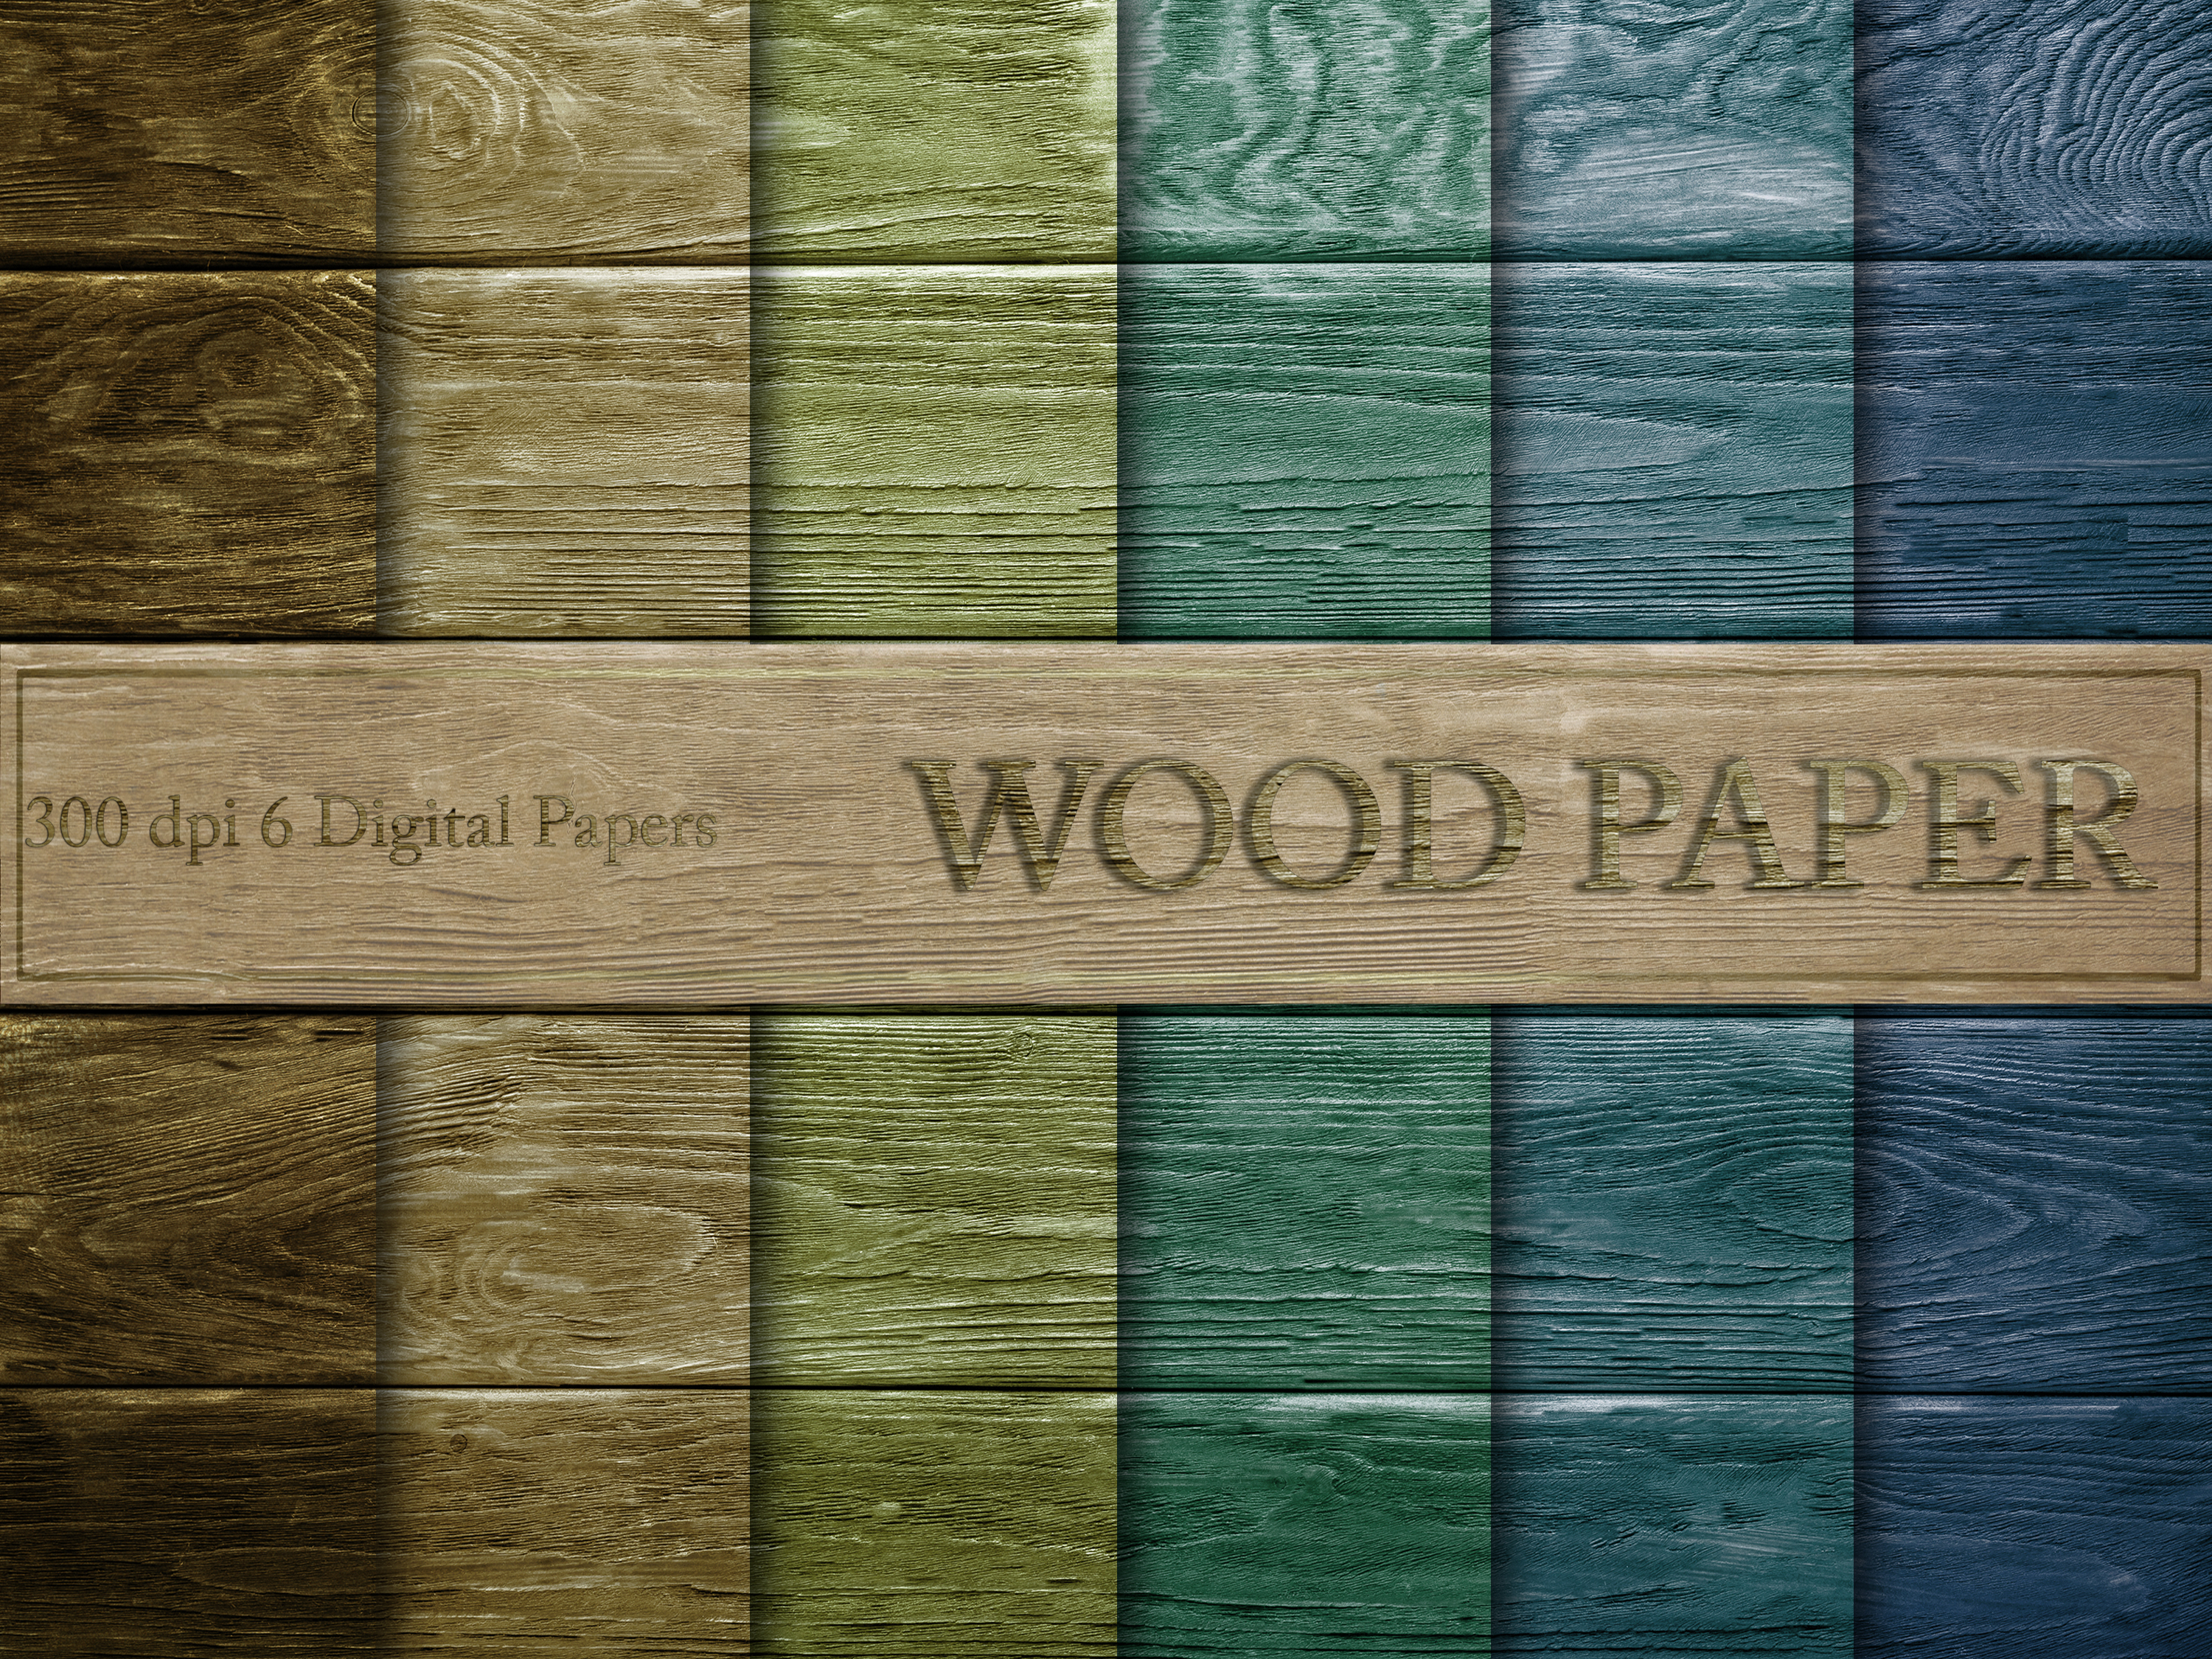 Wood Texture, Backgrounds example image 1